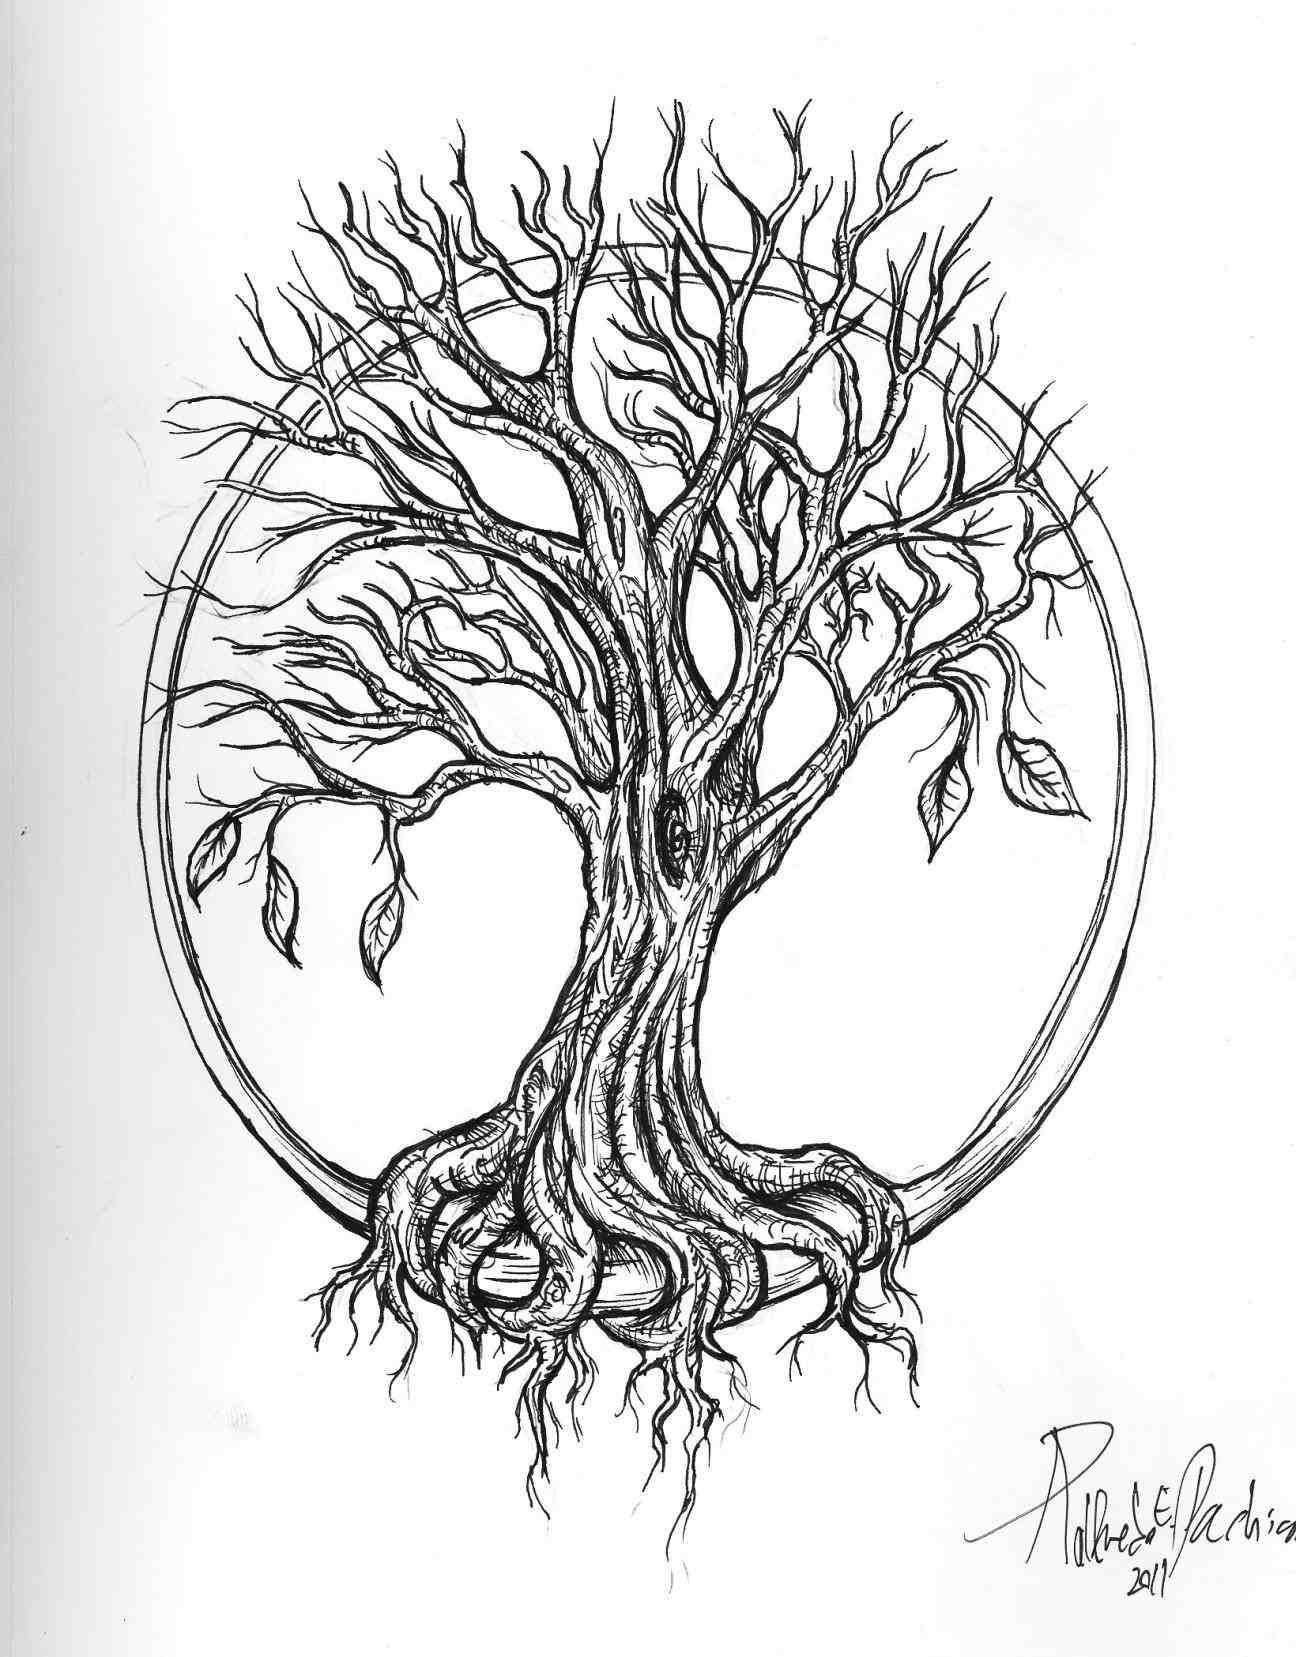 weeping willow tree black and white tattoo | Wire Twist ...Weeping Willow Black And White Tattoo